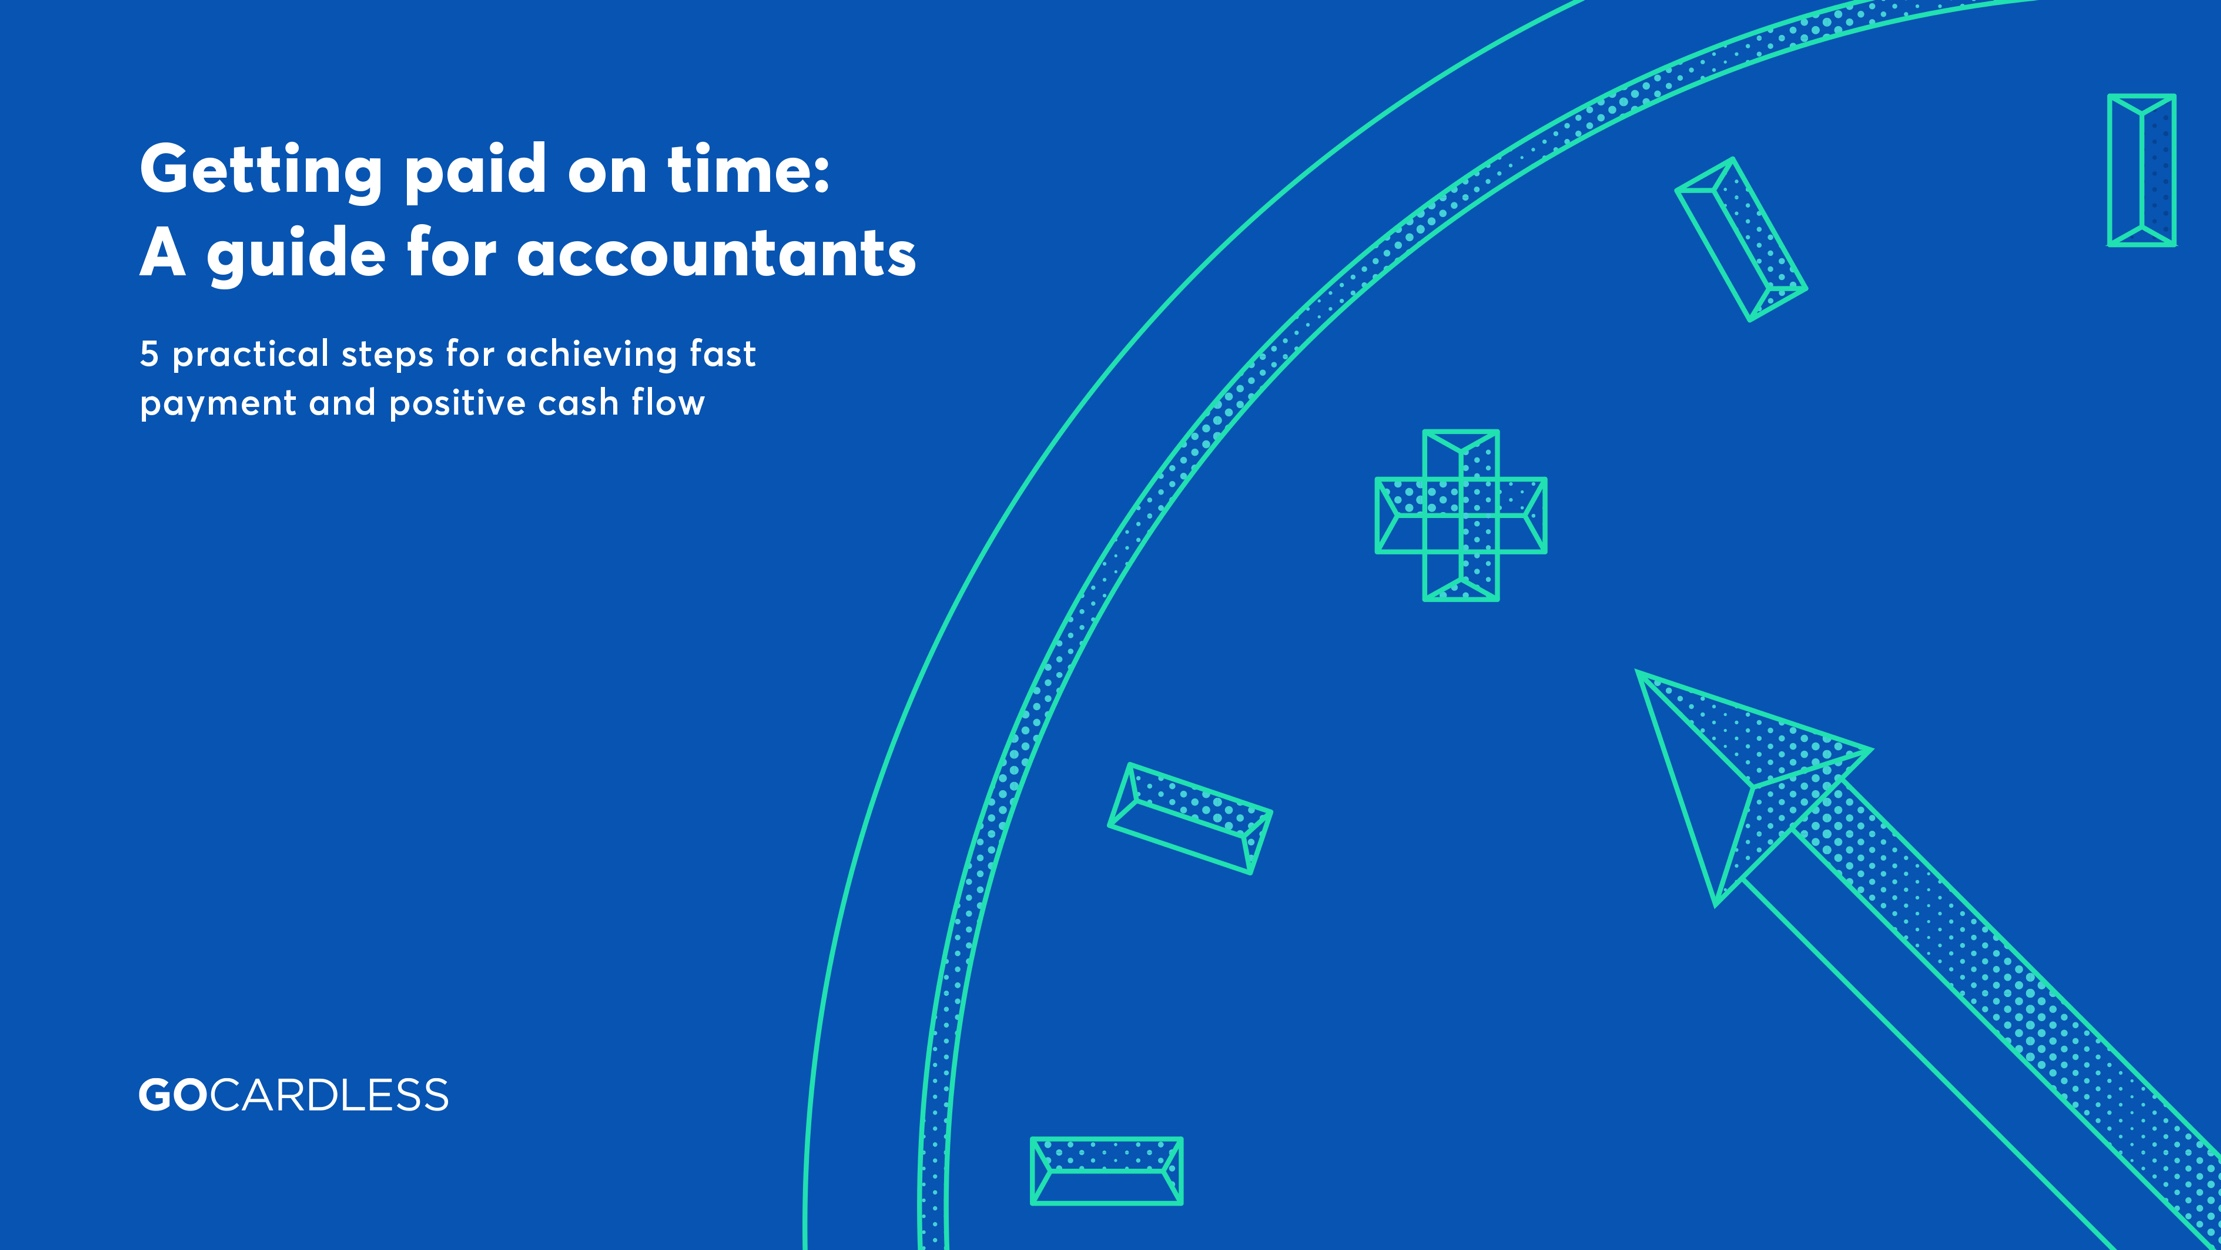 Getting paid on time - guide for accountants